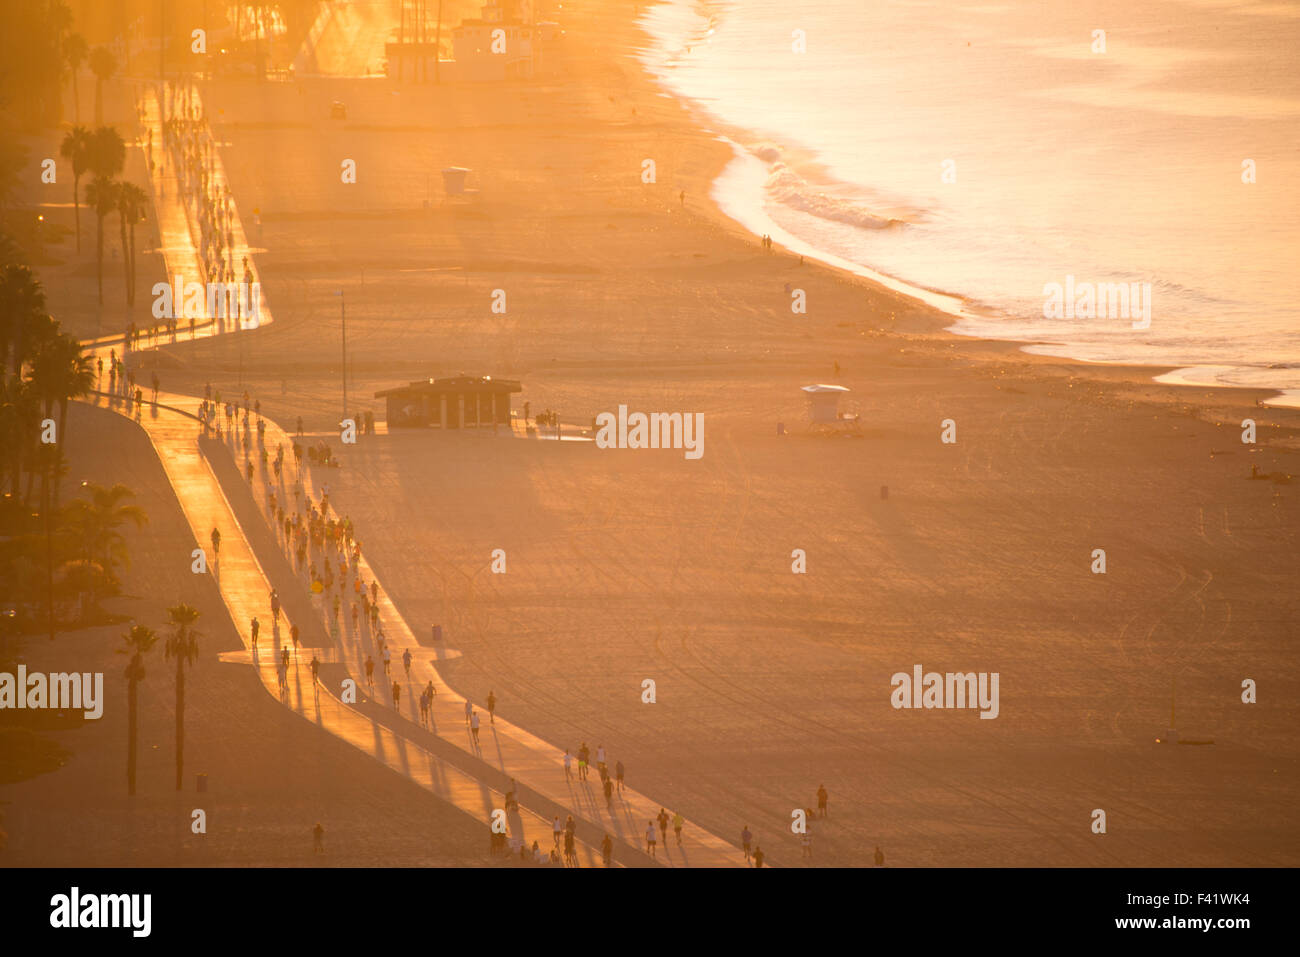 View from above of runners on the beach path at sunrise during the Long Beach Marathon Long Beach Southern California - Stock Image